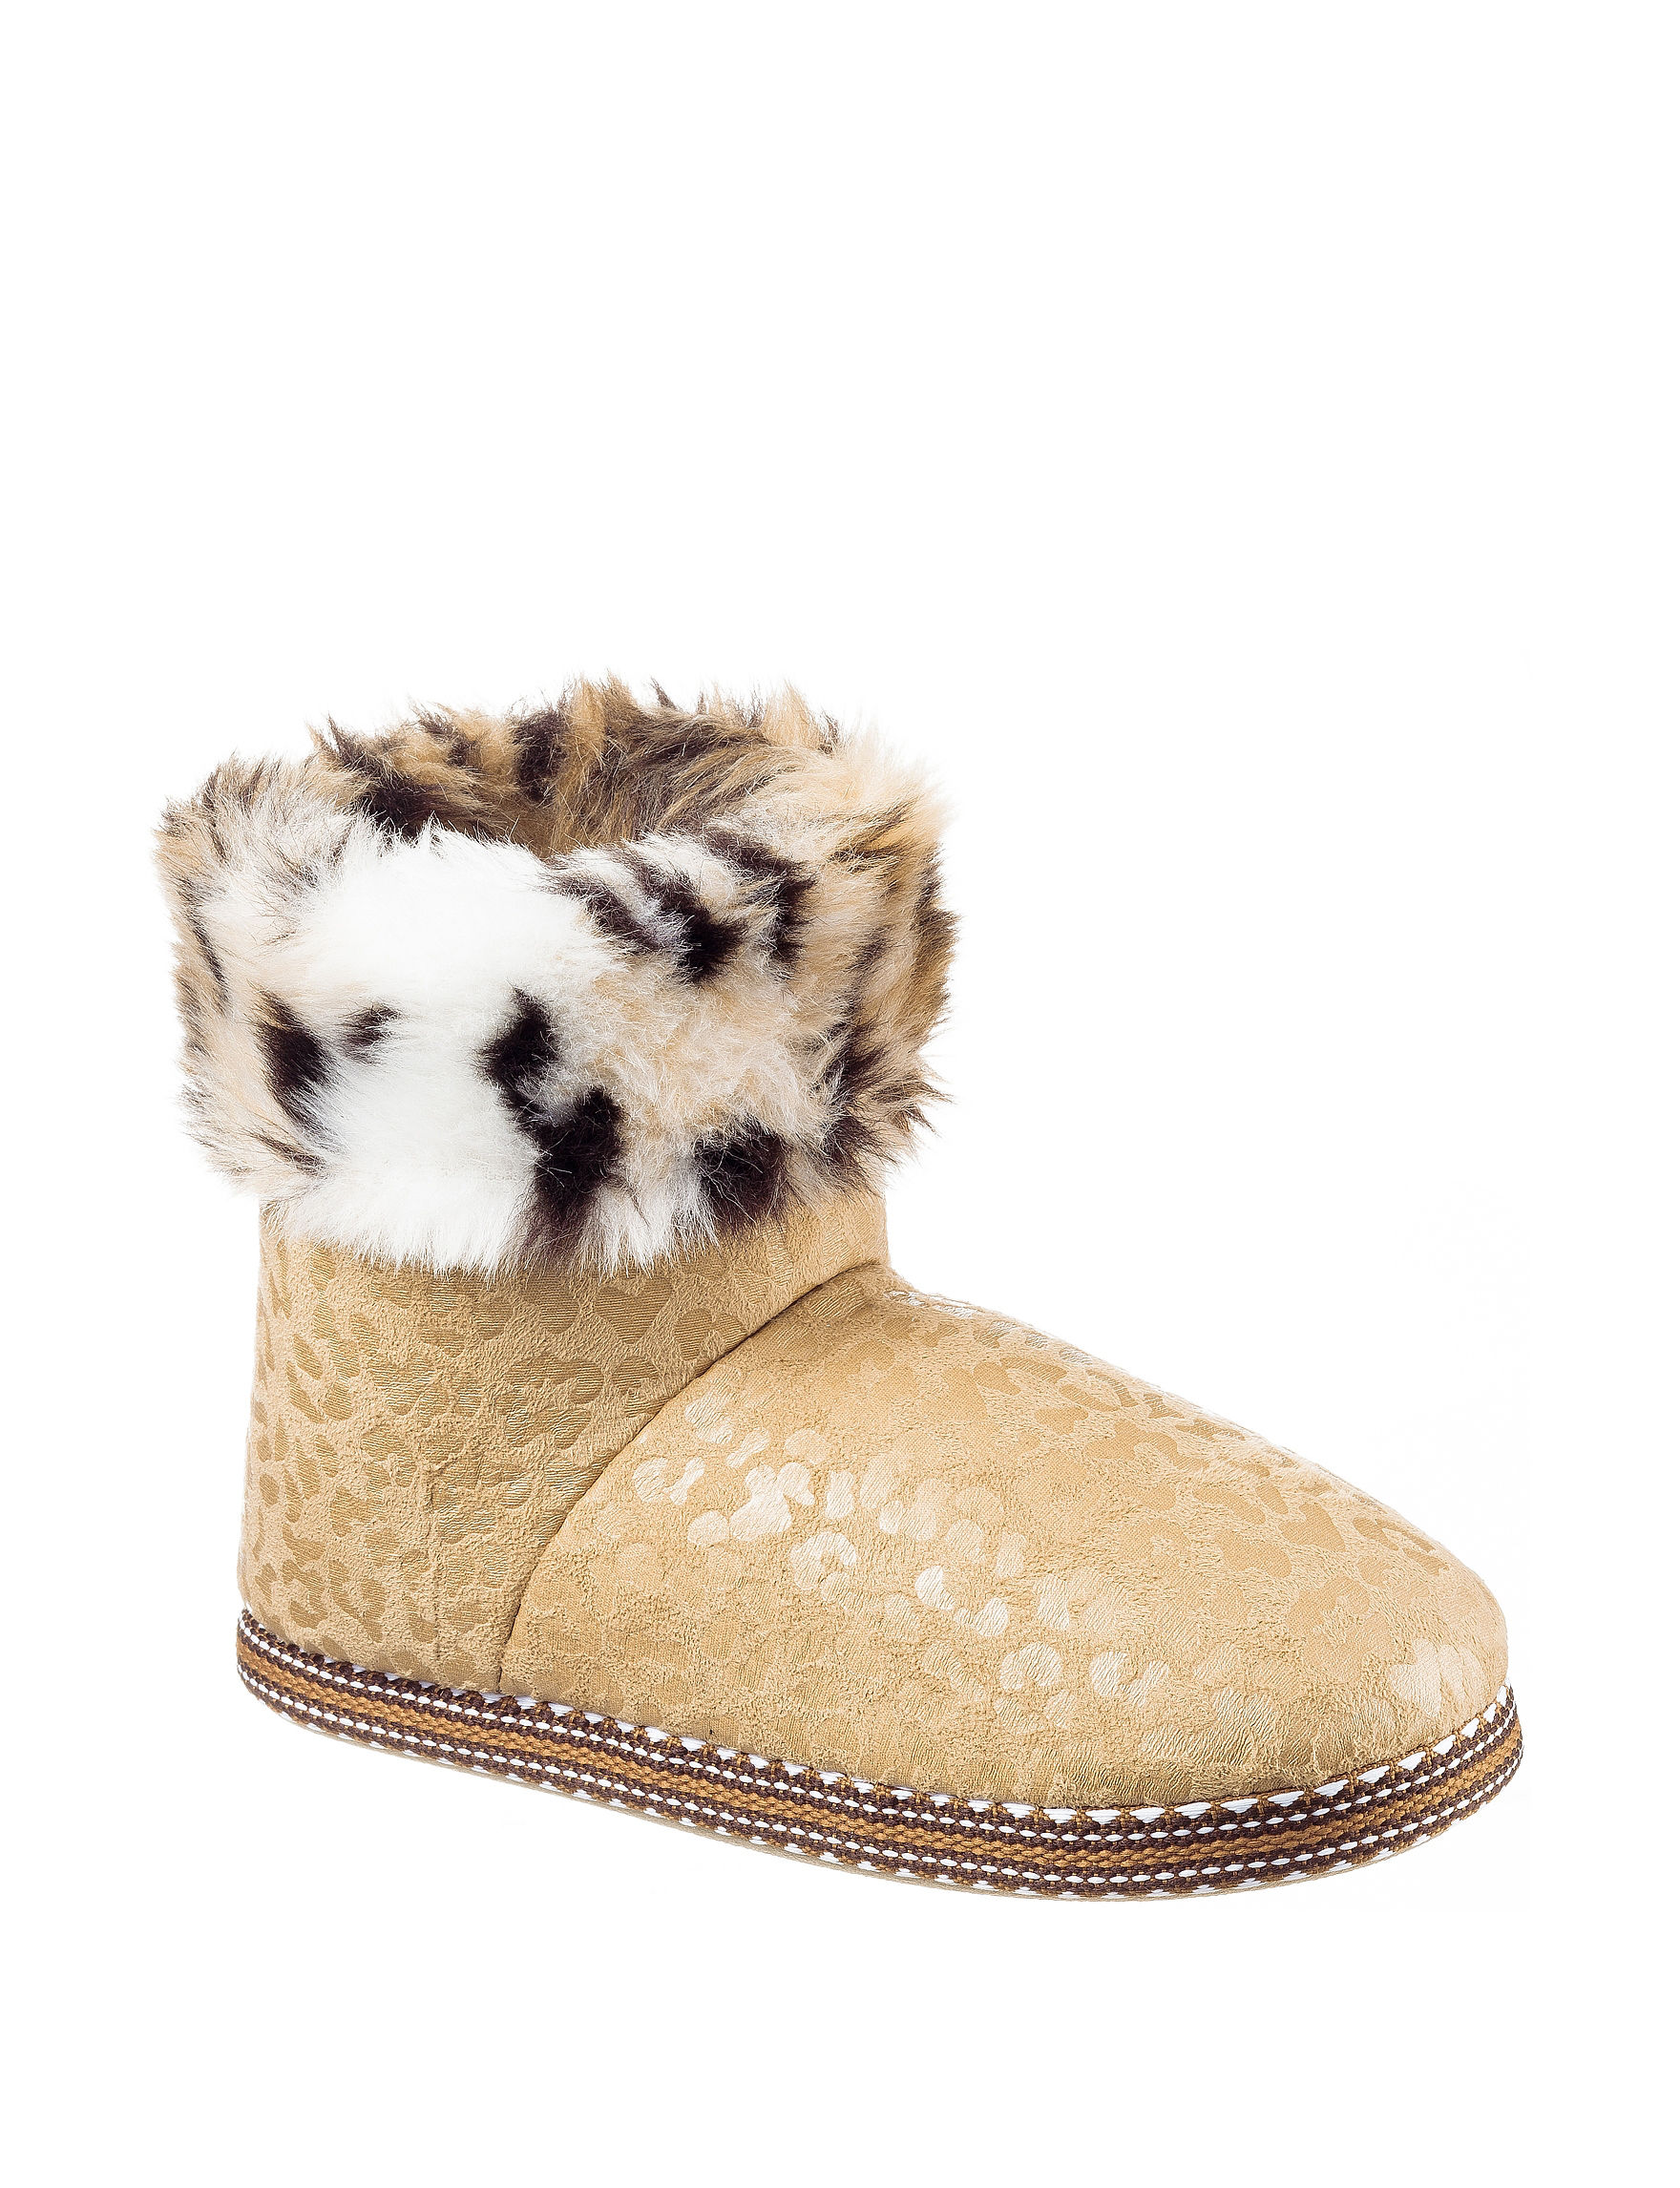 PJ Couture Tan Slipper Boots & Booties